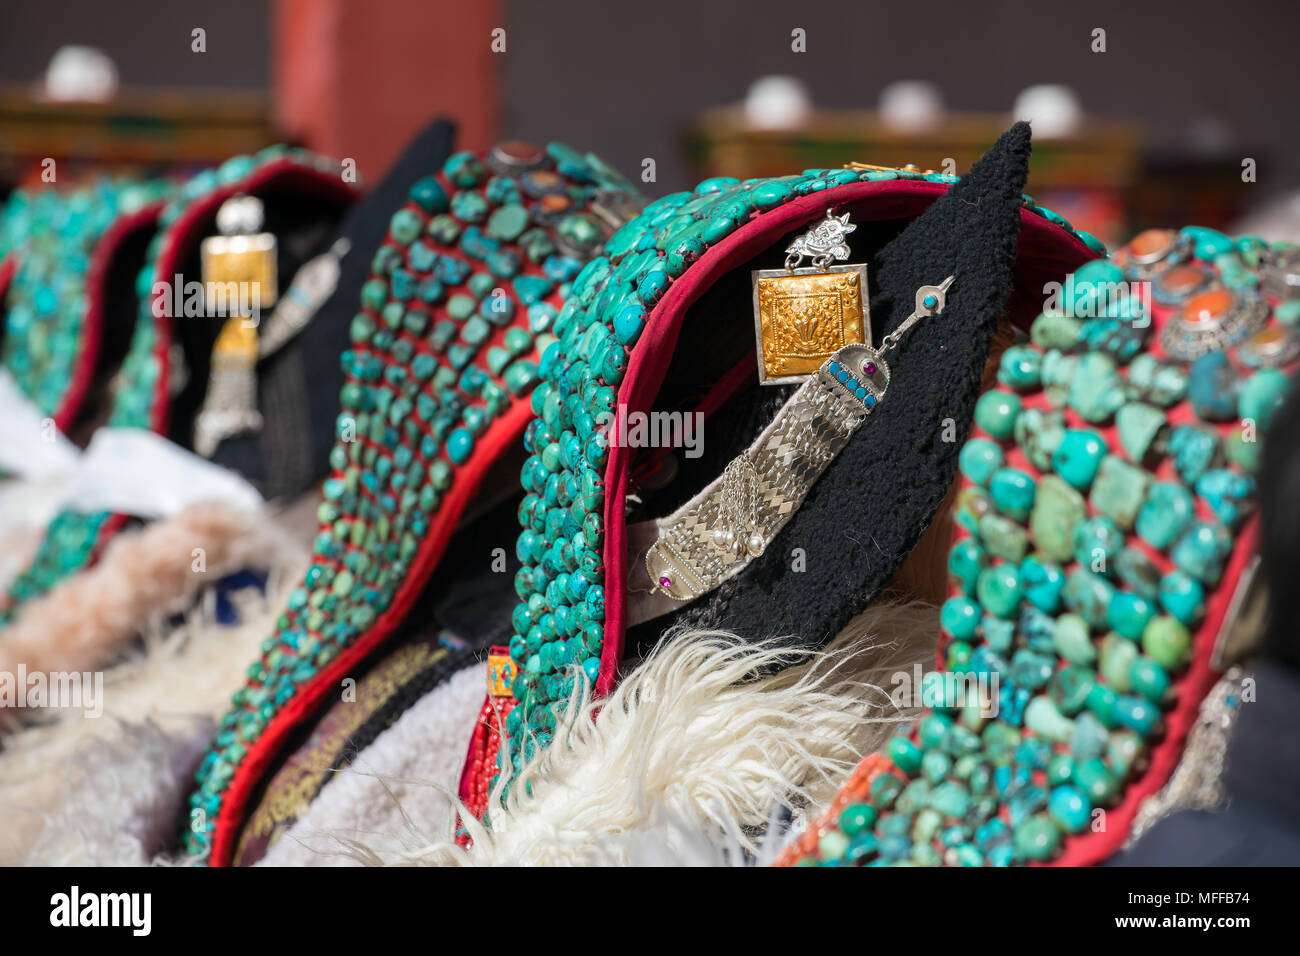 Zanskari women wearing ethnic traditional Ladakhi headdress with turquoise stones called Perakh Perak, Ladakh, India - Stock Image